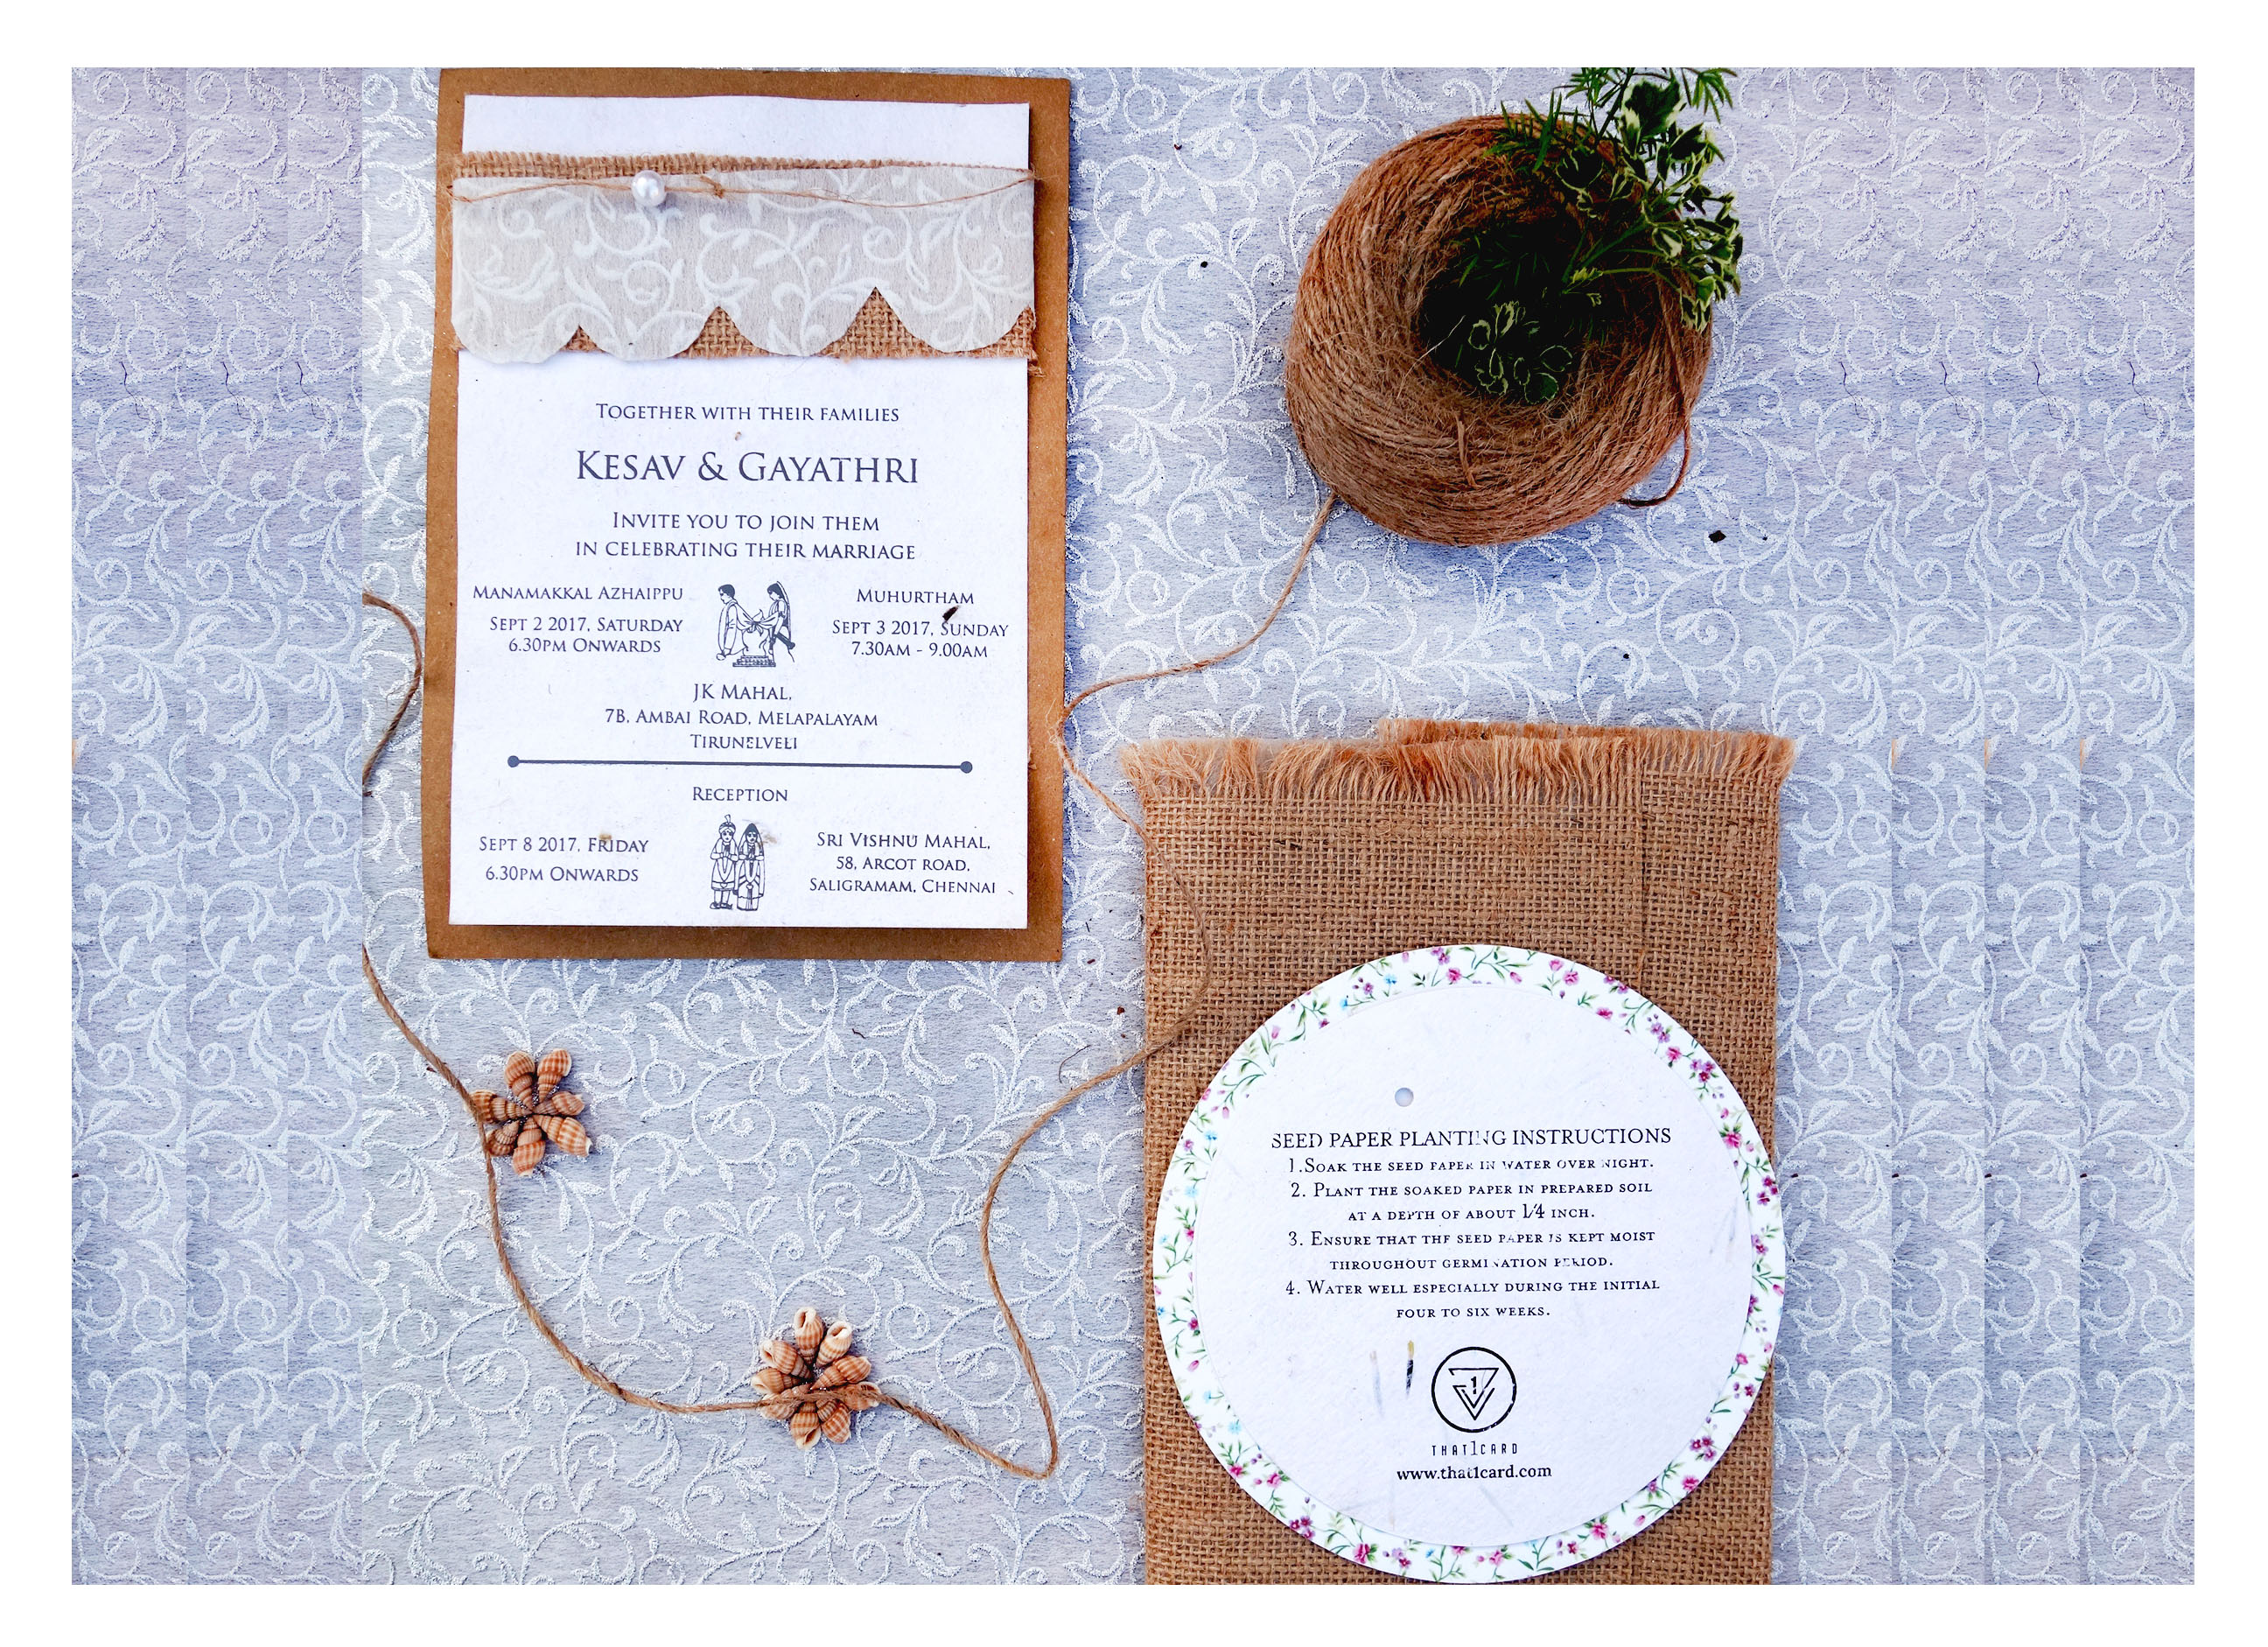 That1card | Eco-friendly invitations | Jio invitations | Recycled